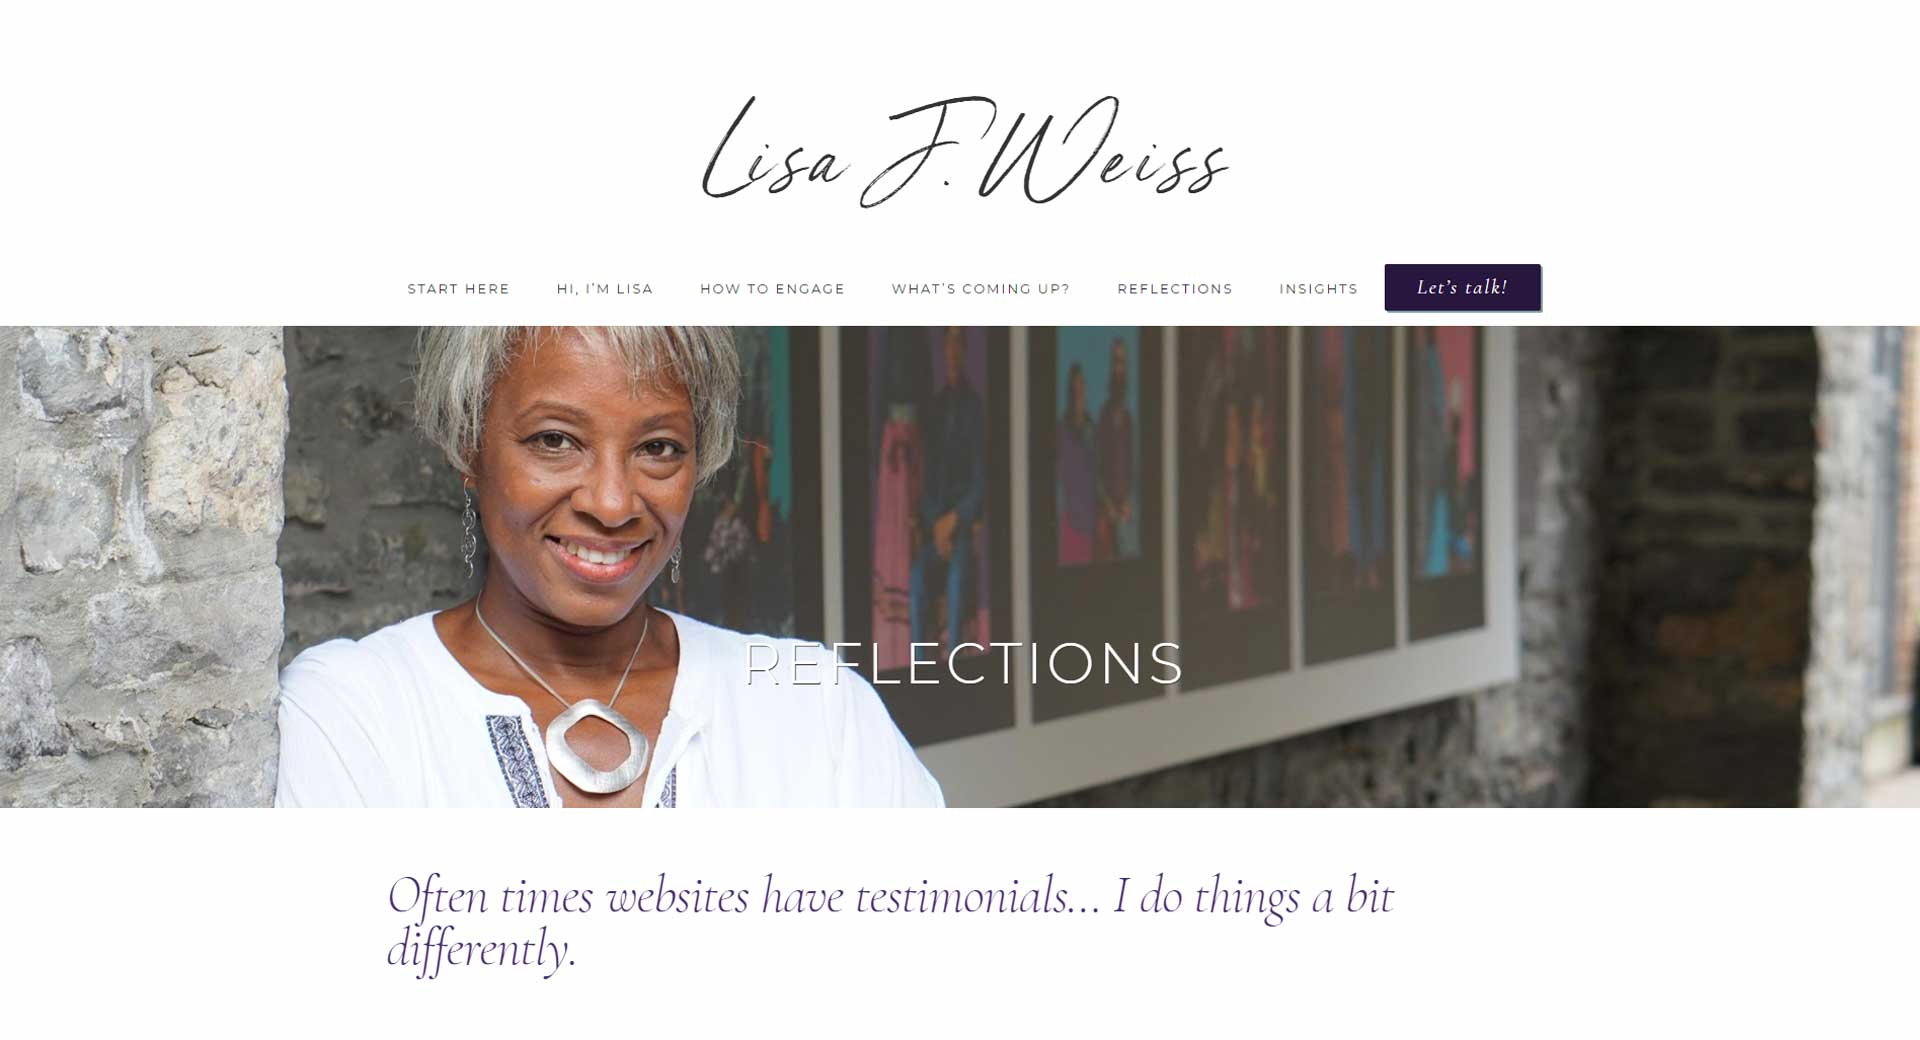 Website photography showing Lisa Weiss conveying gratitude for her clients positive feedback.